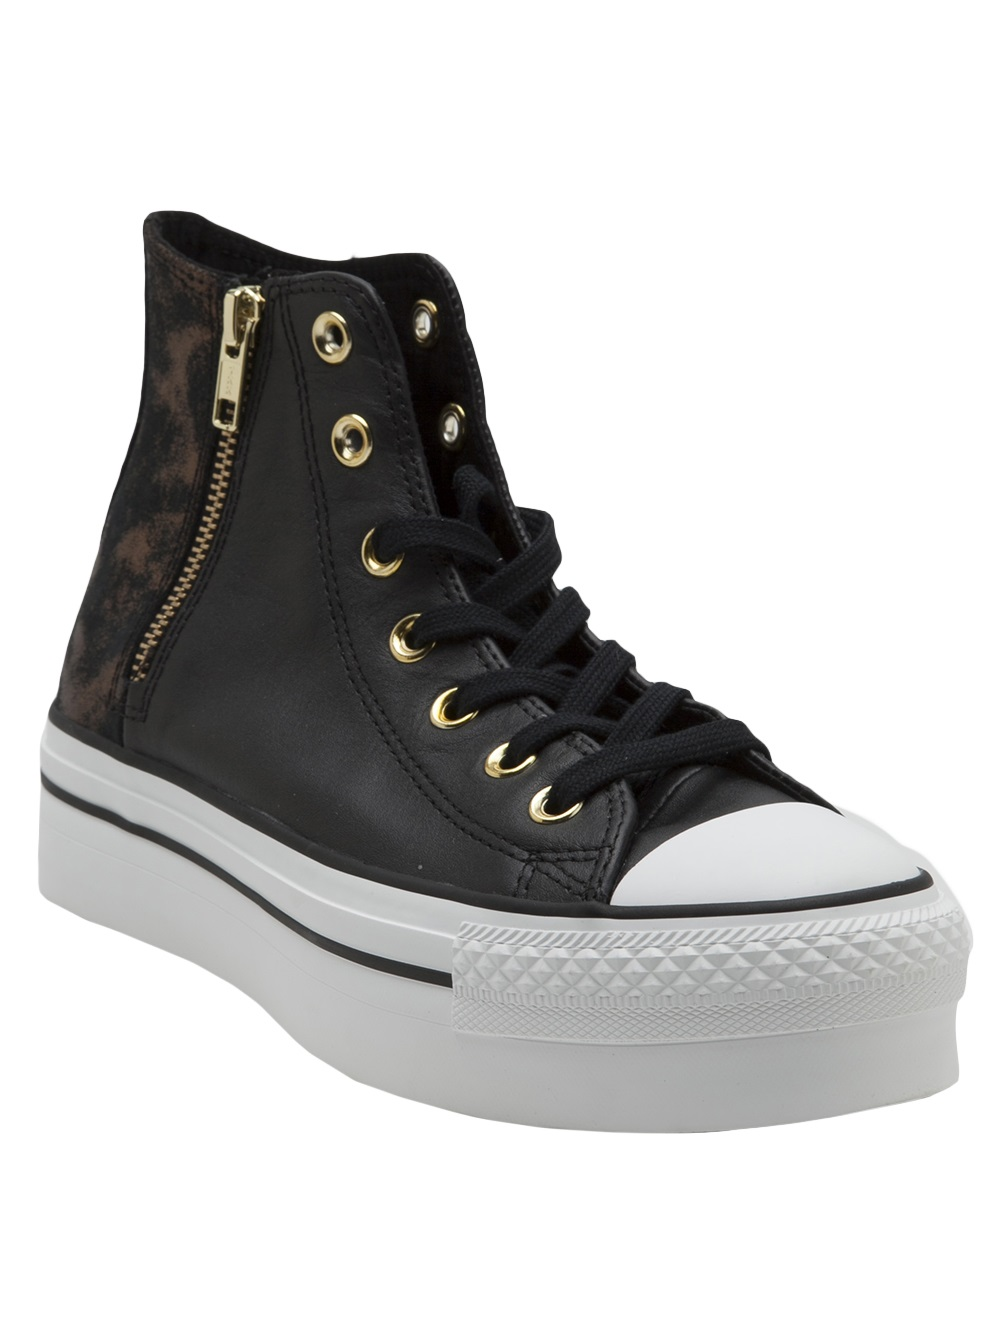 Shop a great selection of Converse at Nordstrom Rack. Find designer Converse up to 70% off and get free shipping on orders over $